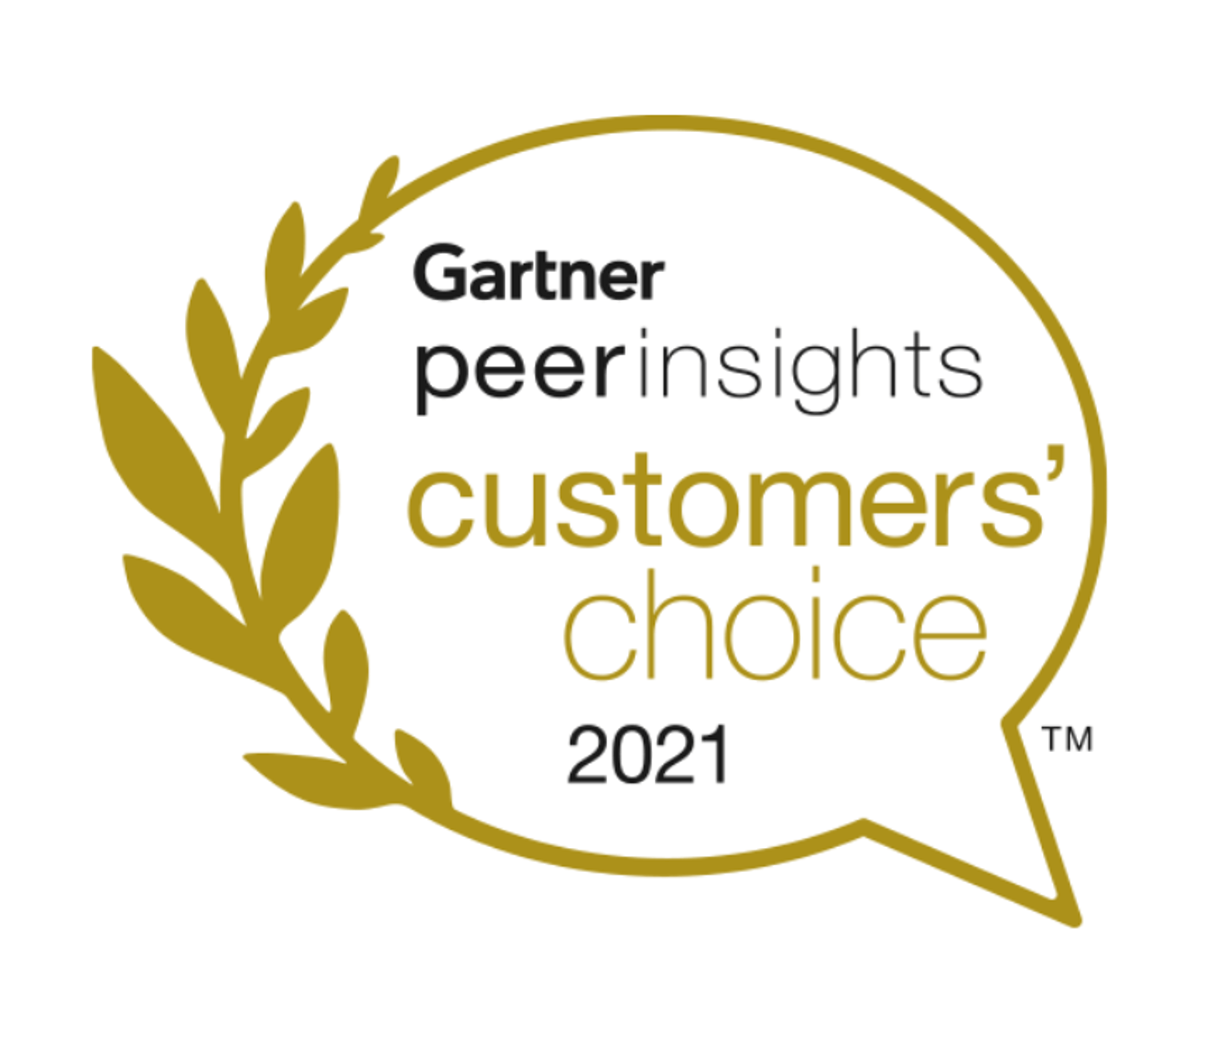 Gartner Peer Insights Customers' Choice 2021 award badge